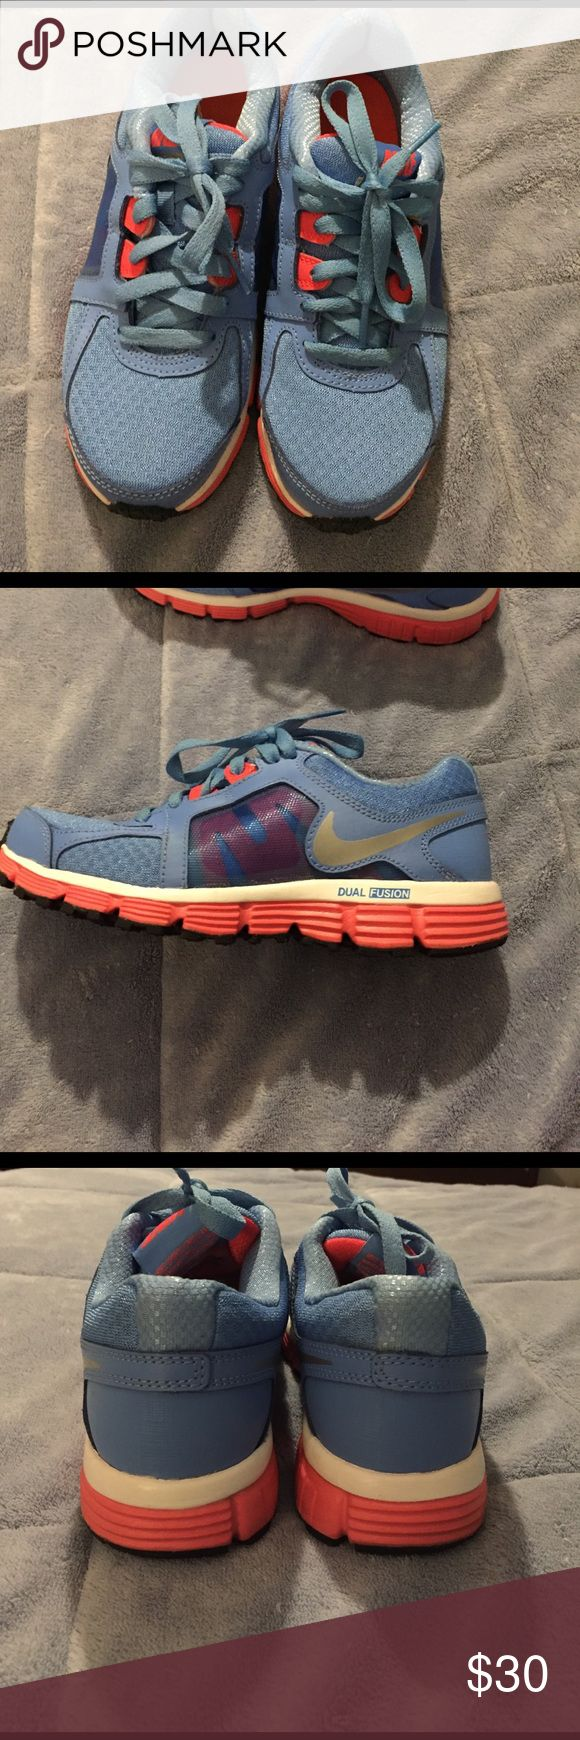 Nike Dual Fusion ST2 sneakers Only worn a few times. Clean and in good condition. Very comfortable and light weight. Light blue with pink. Nike Shoes Sneakers